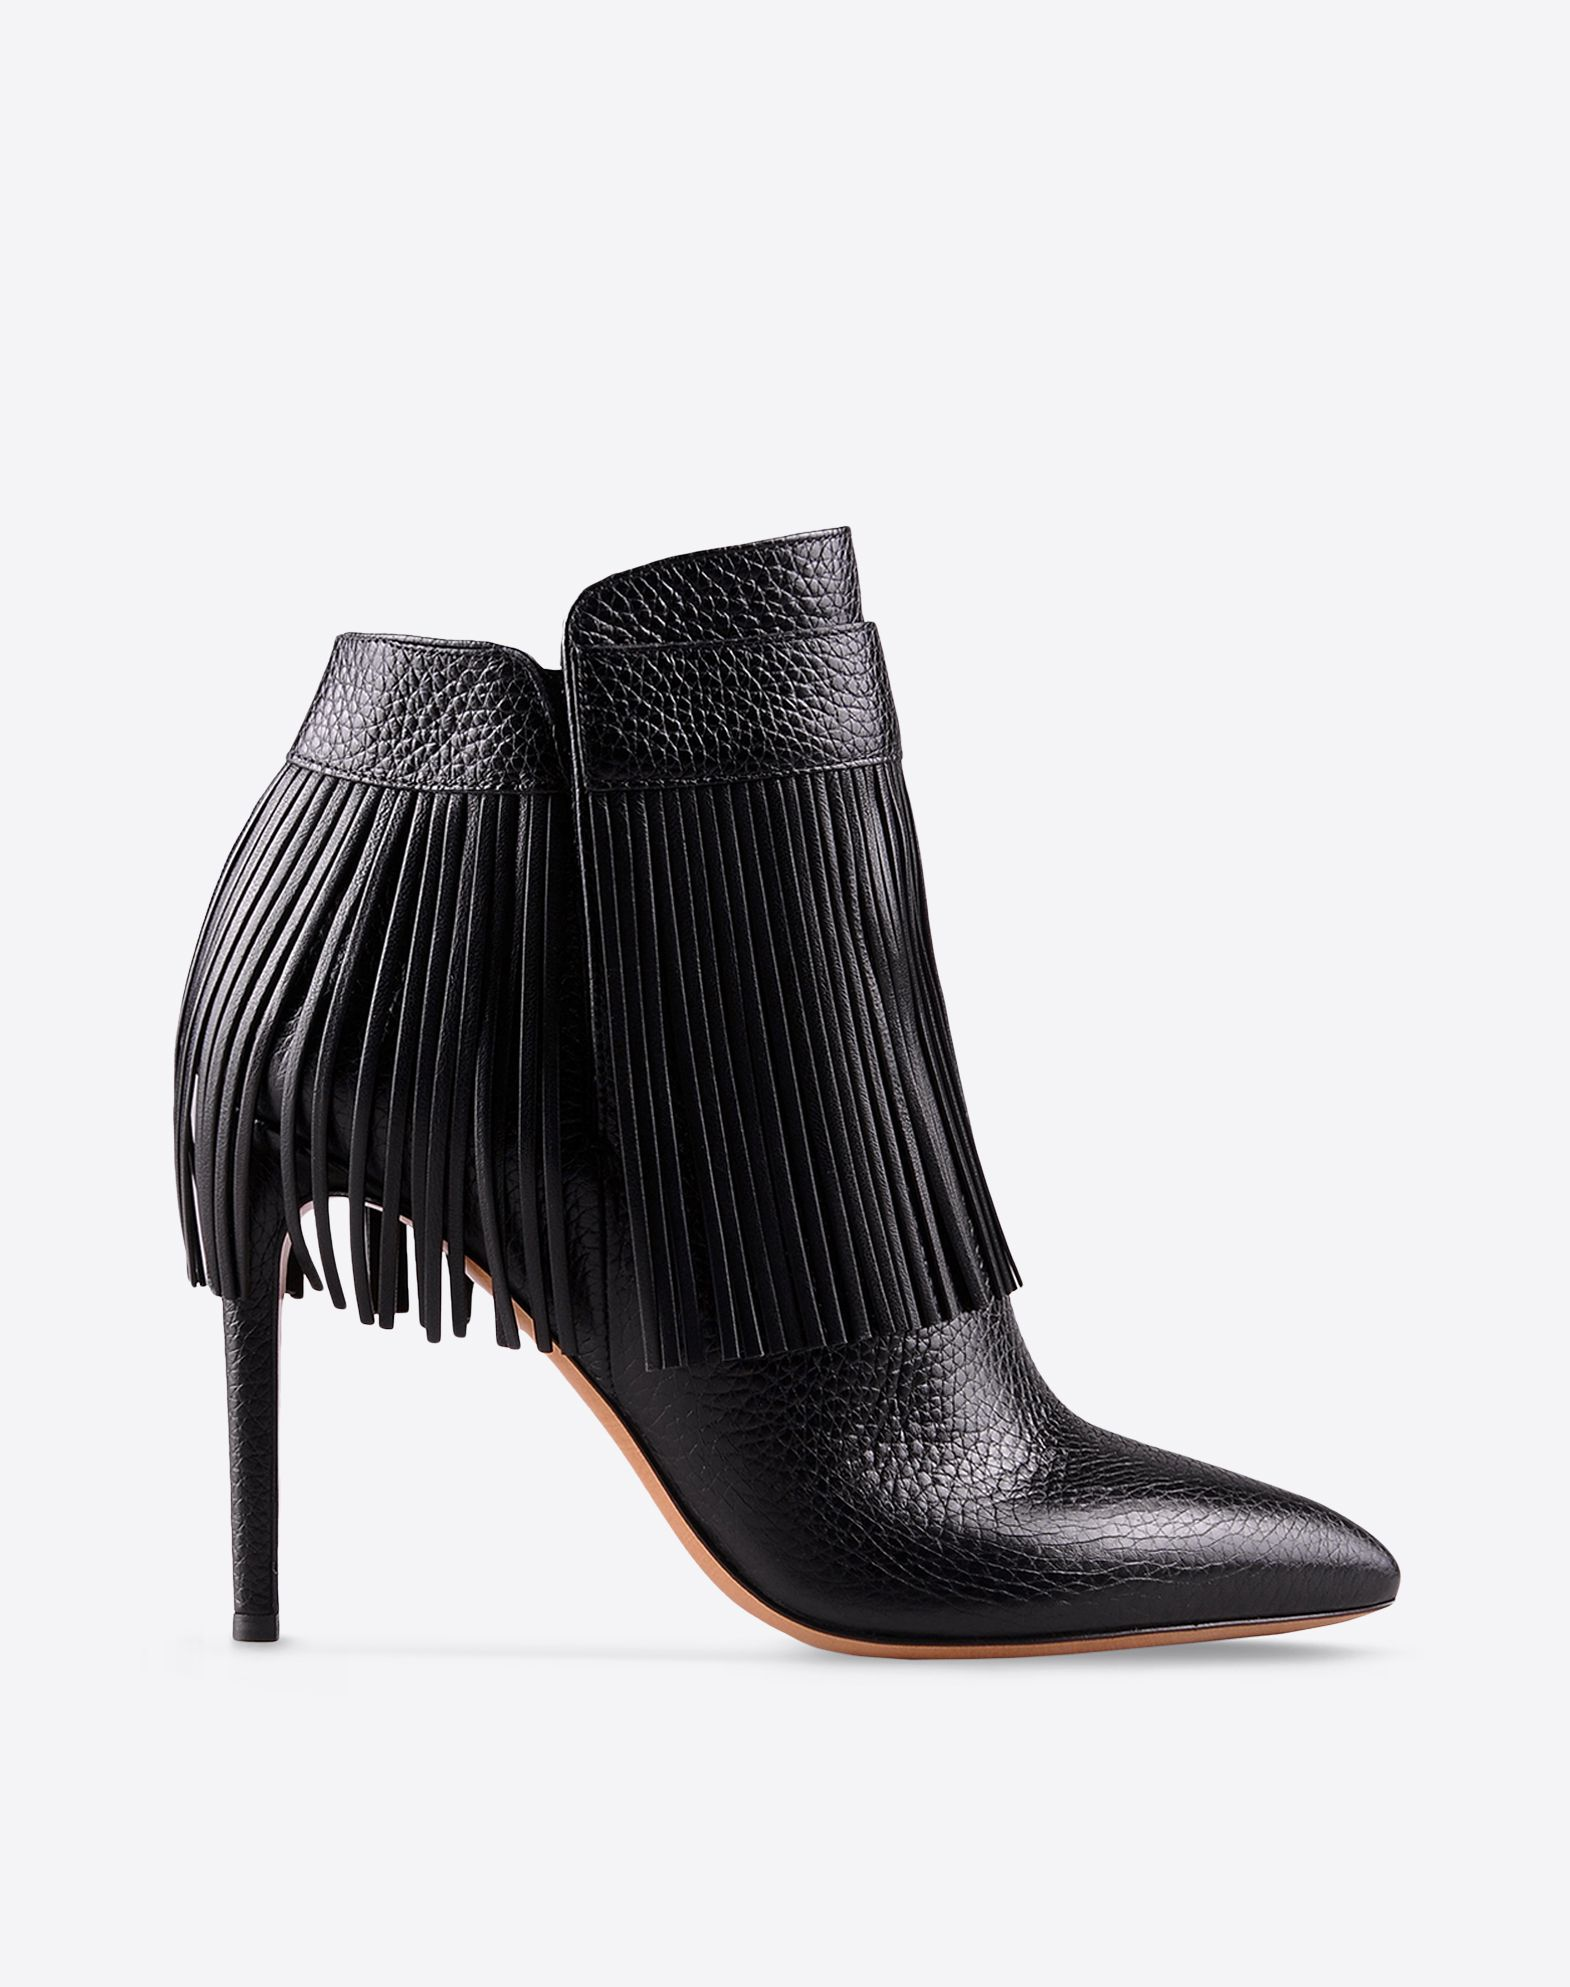 VALENTINO Fringe Textured leather Solid color Zip closure Leather sole Covered heel Narrow toeline  44724696oj